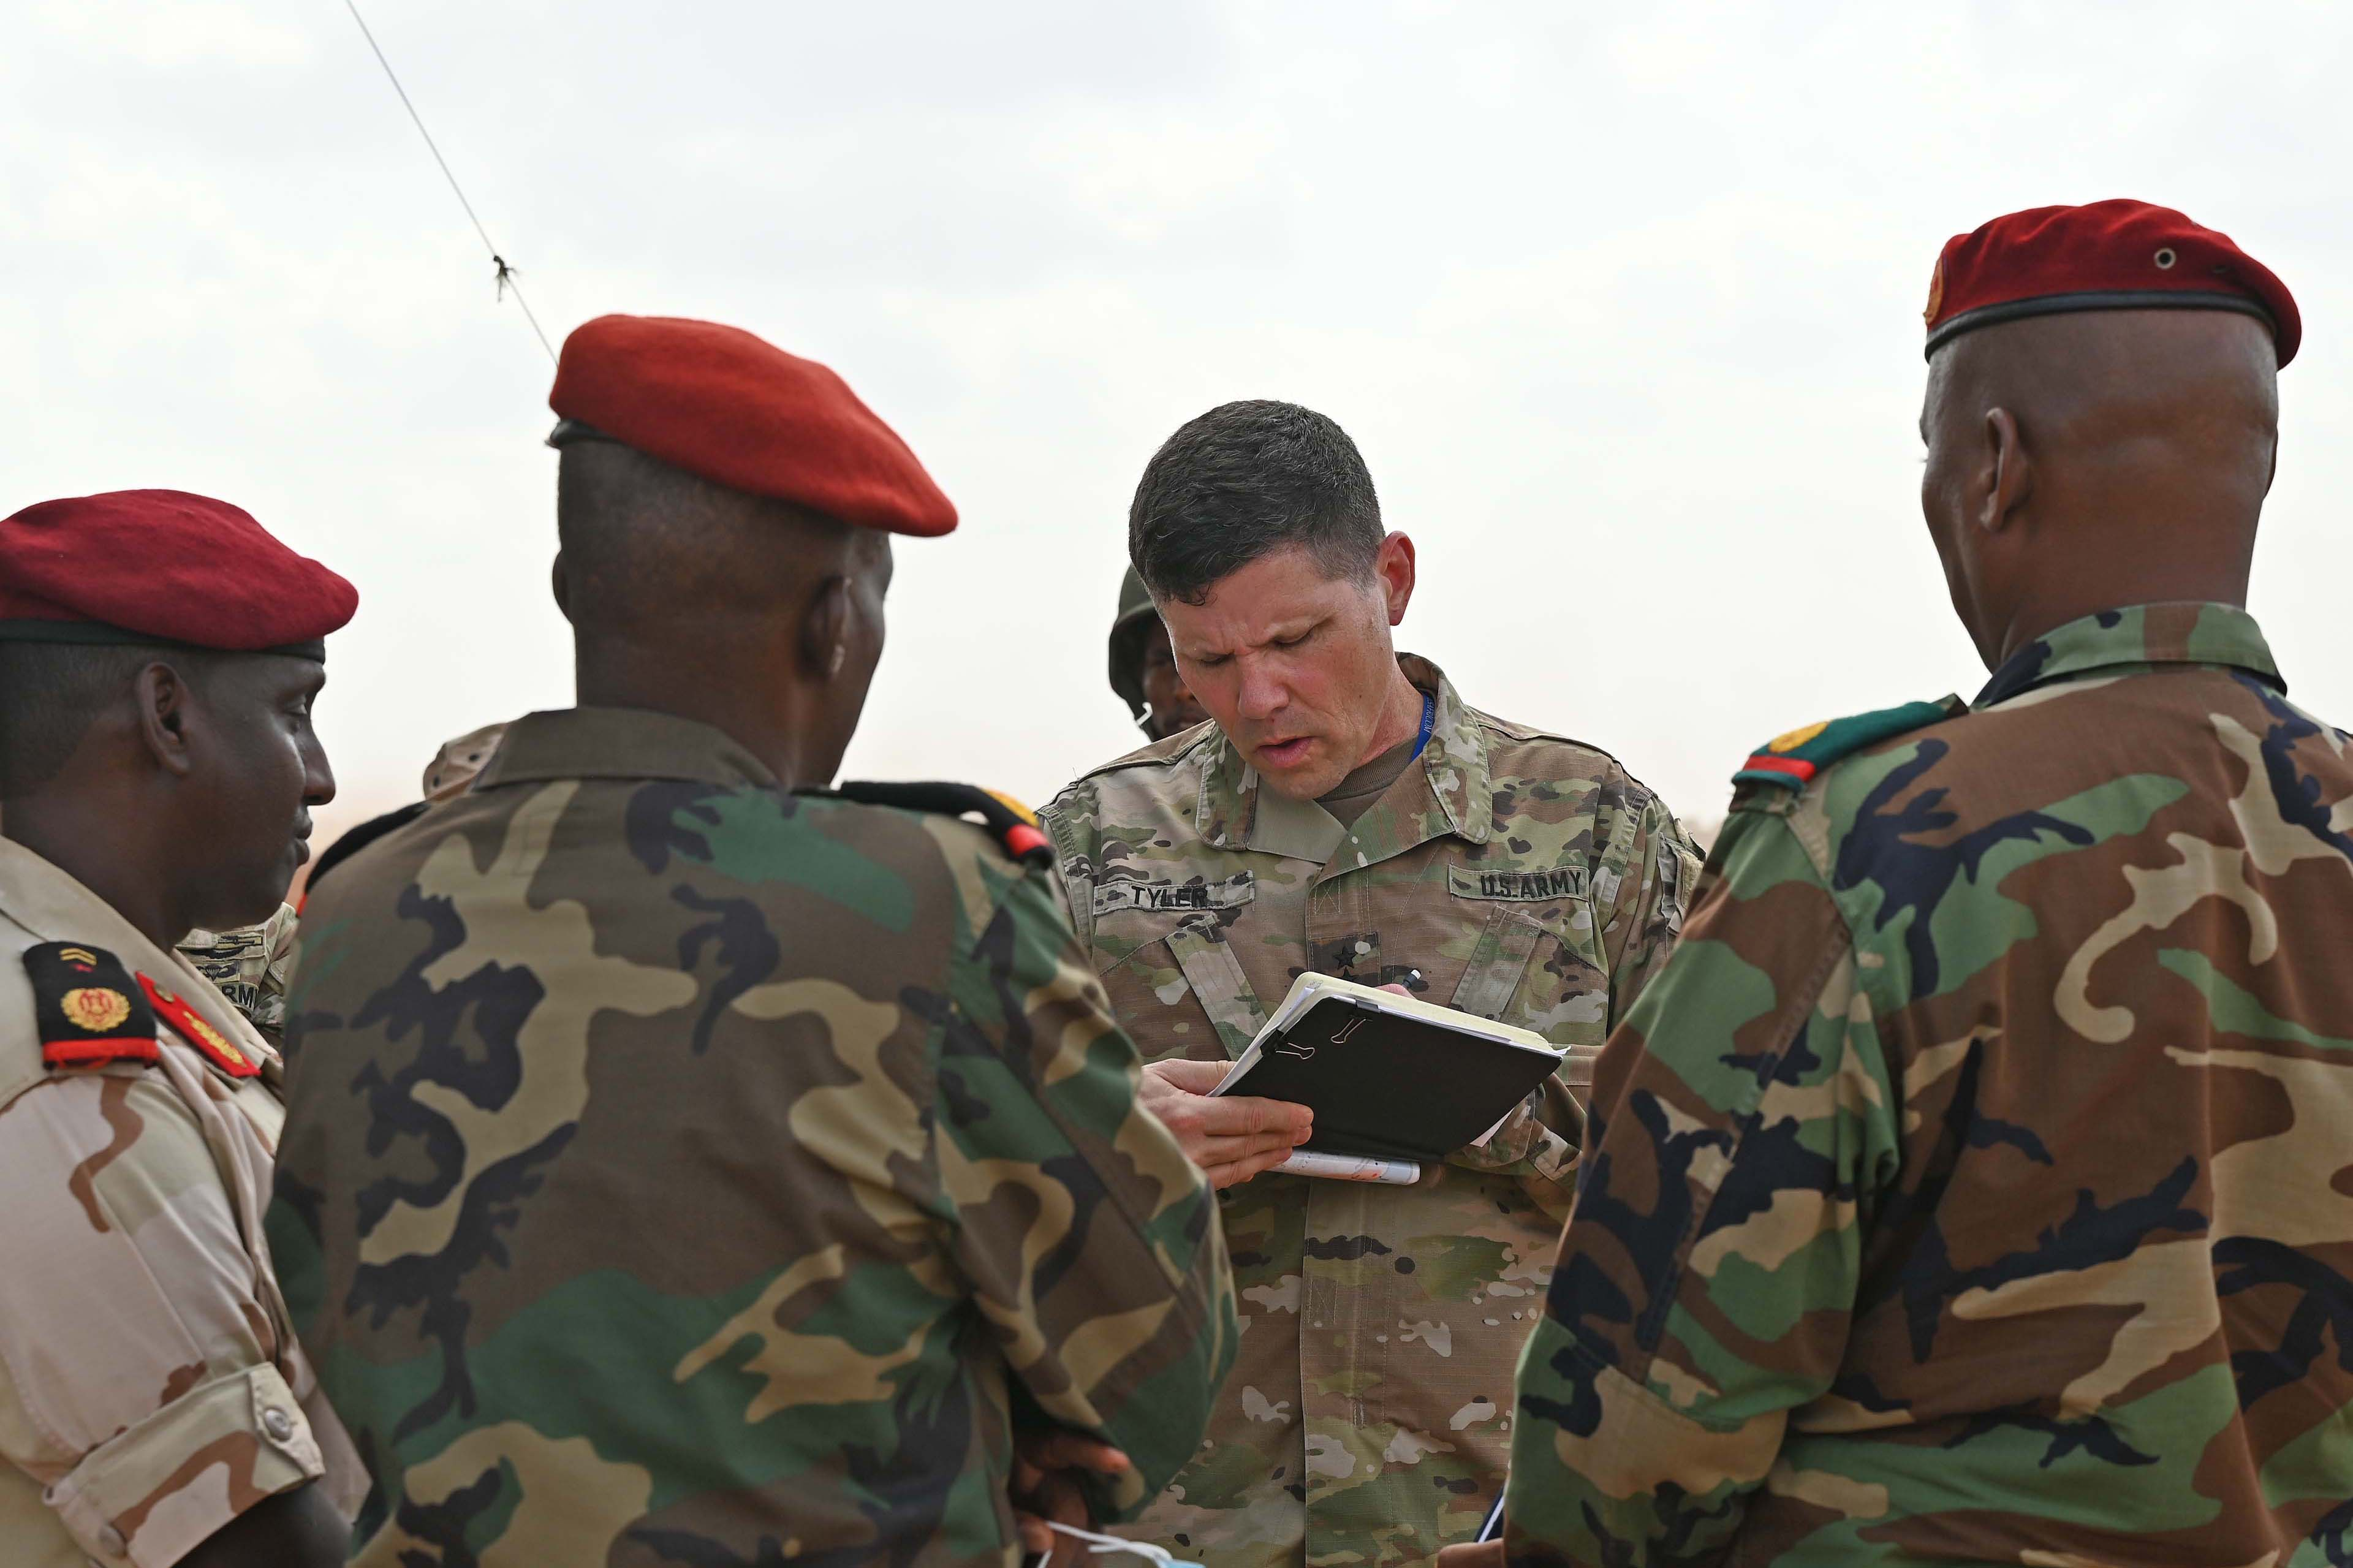 U.S. Army Major General Lapthe C. Flora, commanding general of Combined Joint Task Force - Horn of Africa (CJTF-HOA), talks to Italian Army Brigadier General Fabiano Zinzone, European Union Training Mission - Somalia (EUTM-S) mission force commander, following a change of command ceremony in Mogadishu, Somalia, Aug. 9, 2020. (U.S. Air Force photo by Senior Airman Kristen A. Heller)